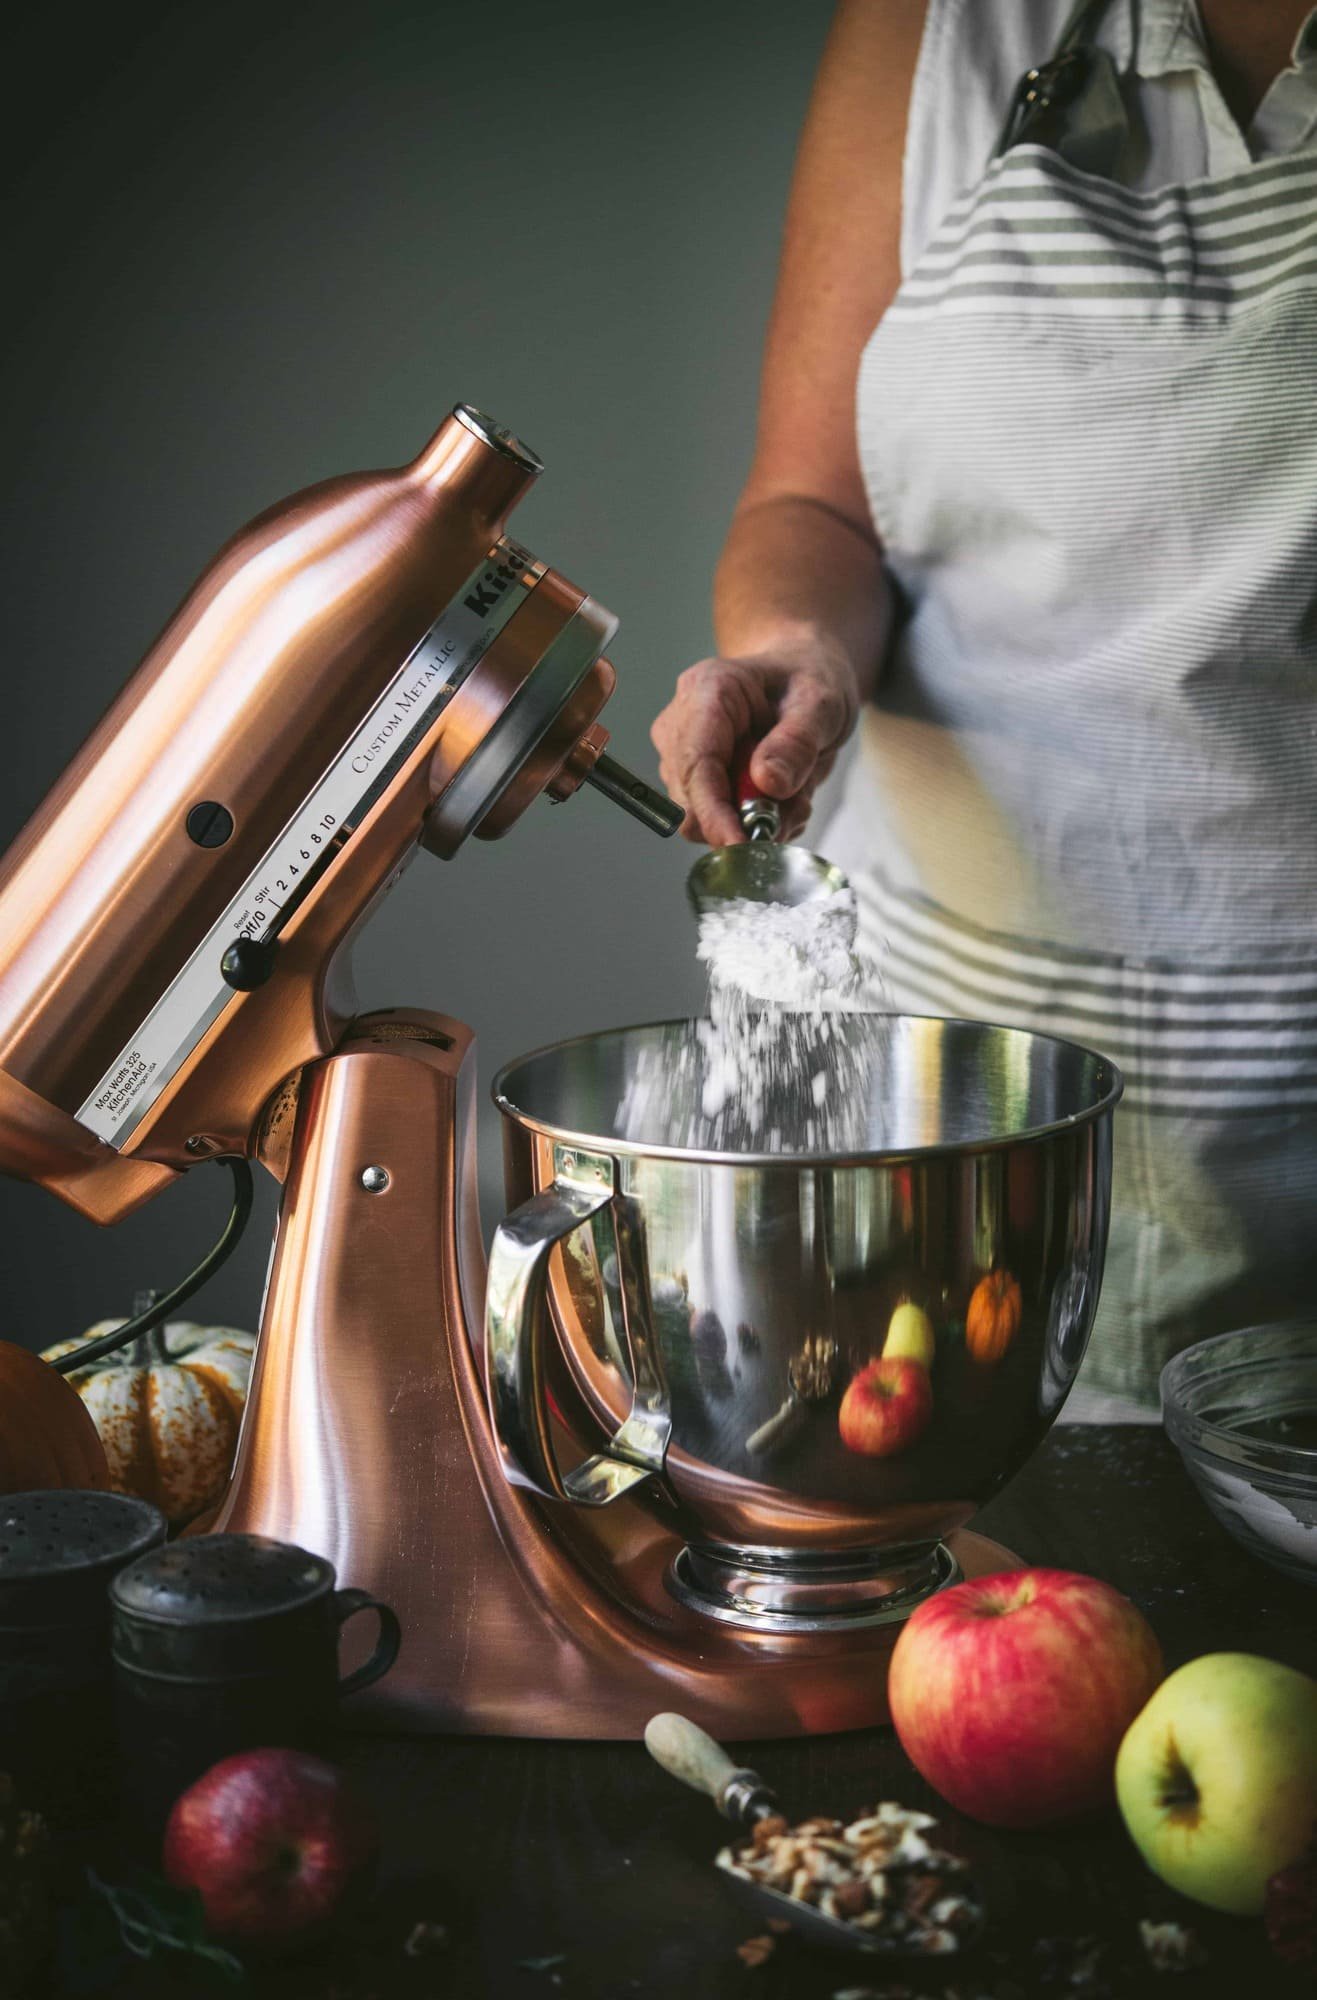 Action shot of pouring flour into a copper stand mixer